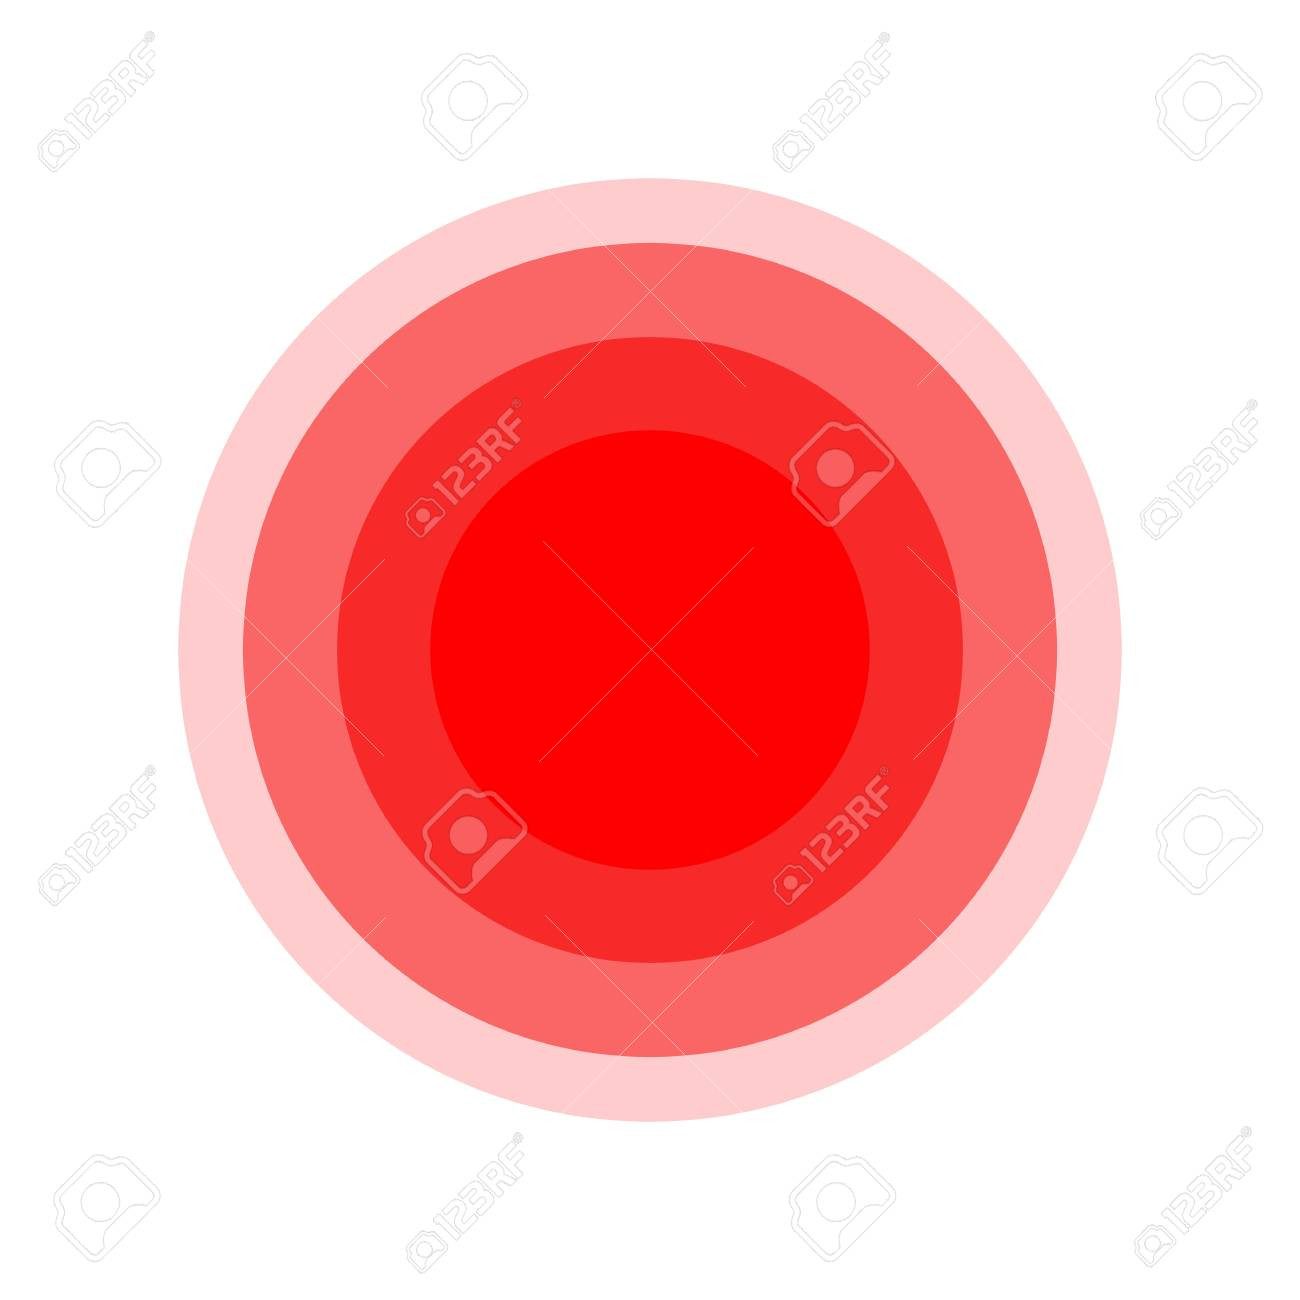 Pain Symbol Circle Red Medical Ring Icon Royalty Free Cliparts